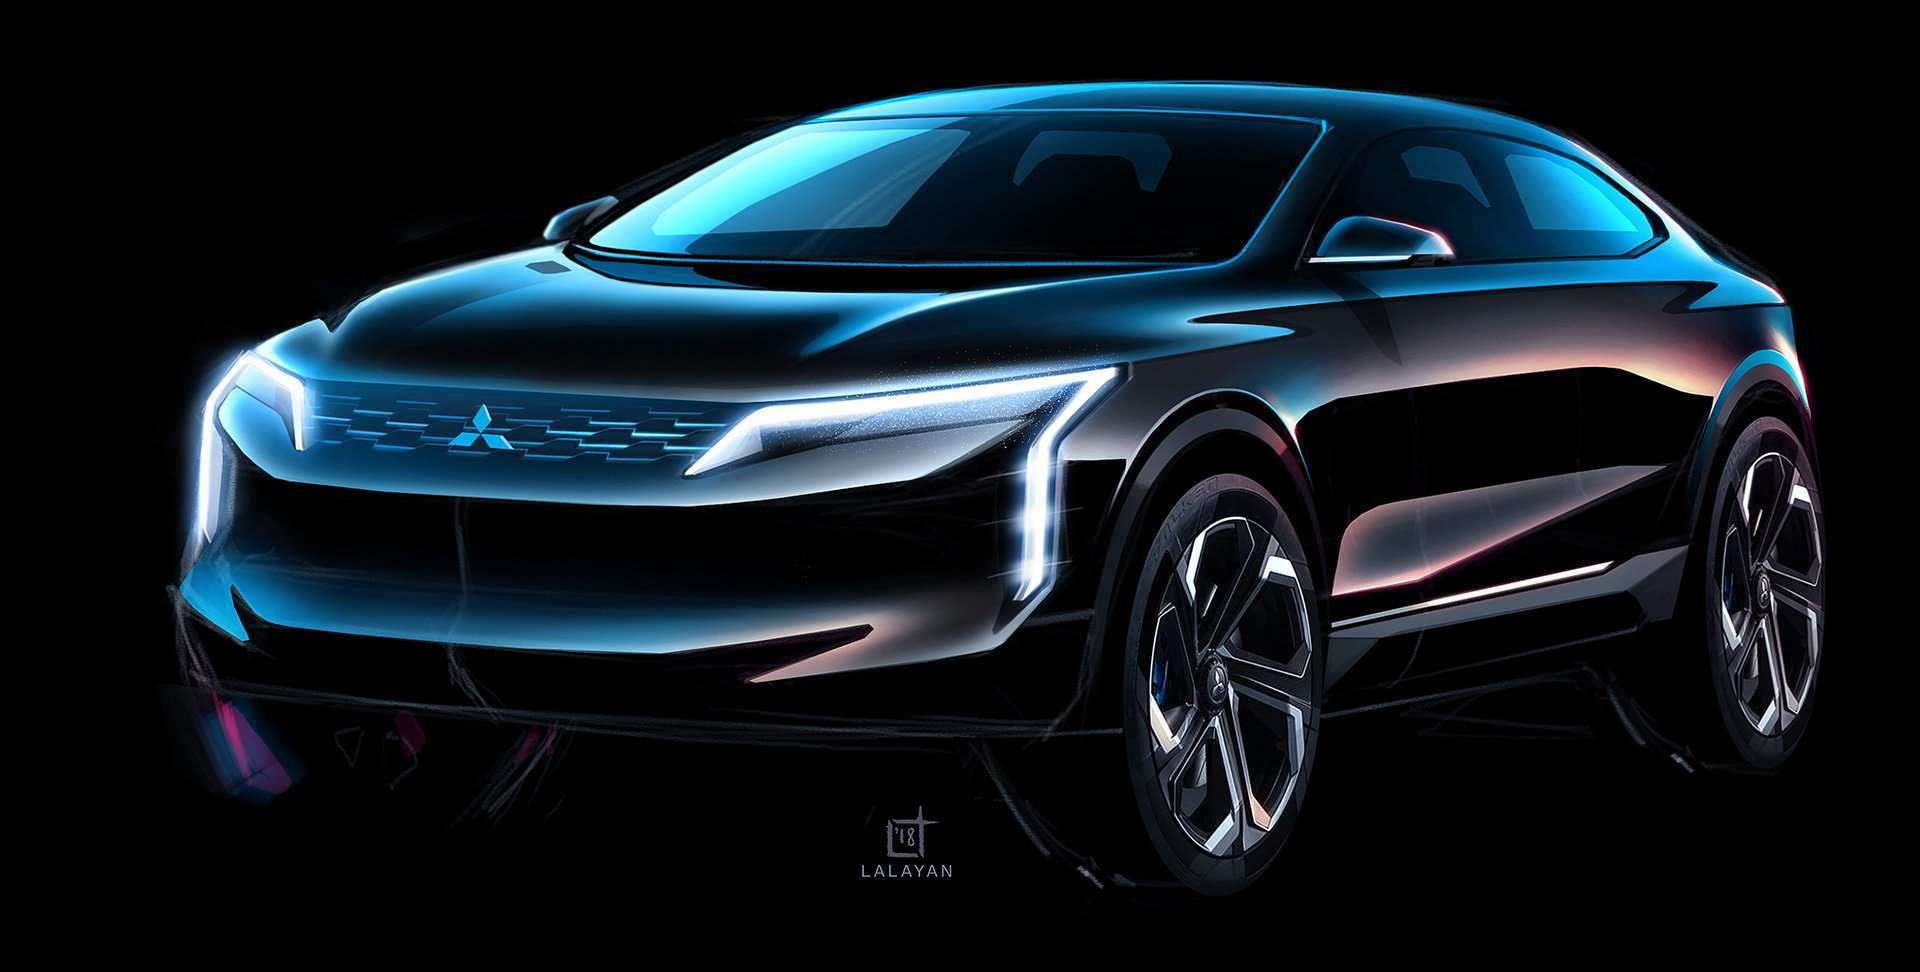 11 Best Mitsubishi Lancer Ex 2020 Release Date And Concept